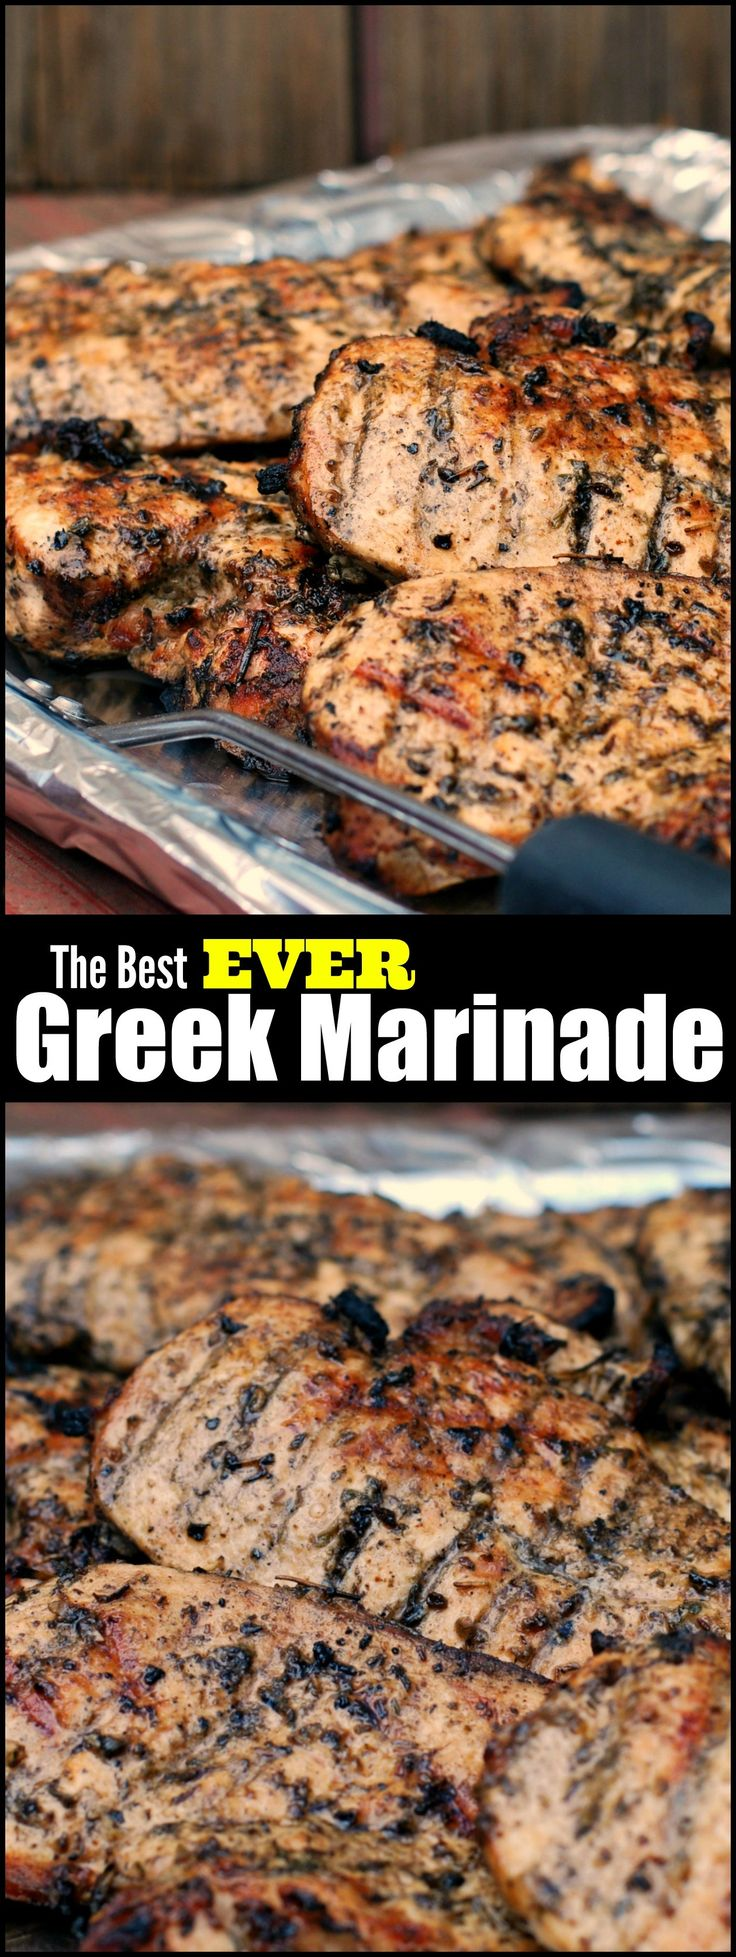 The Best Greek Marinade Aunt Bee's Recipes